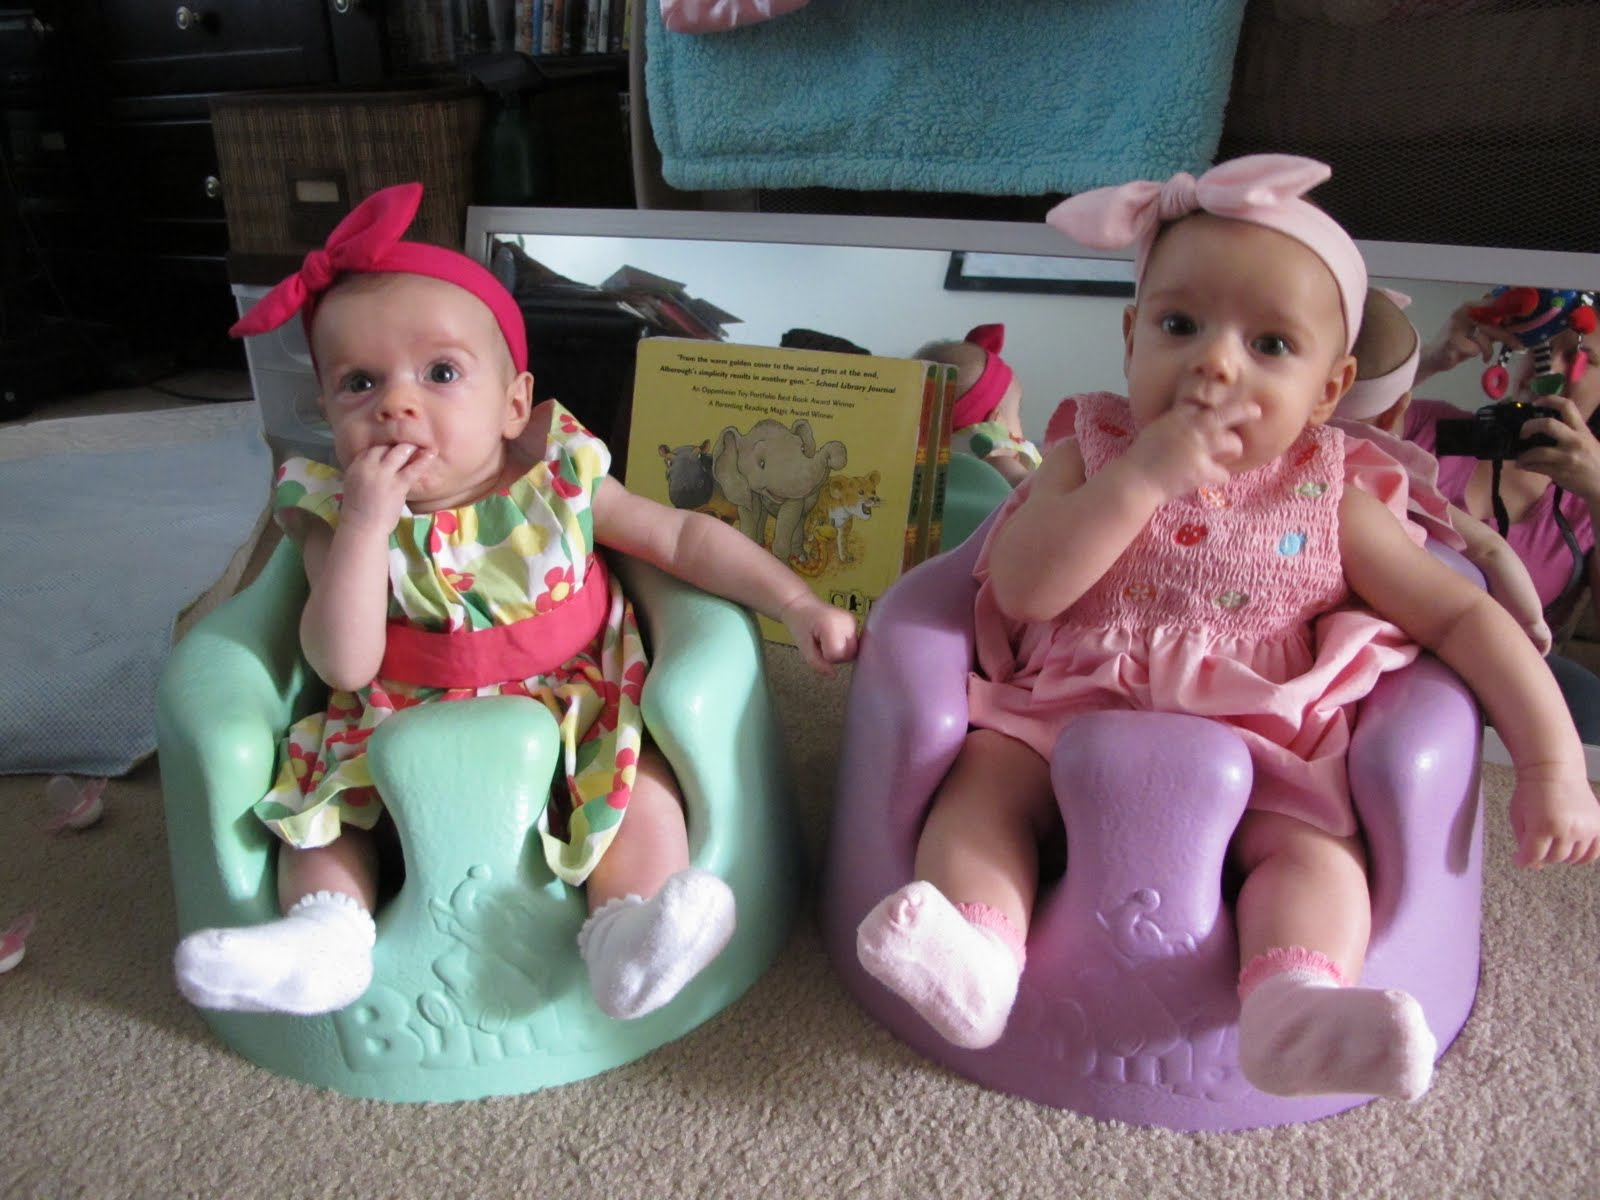 Sanow Twins 3 Months Old